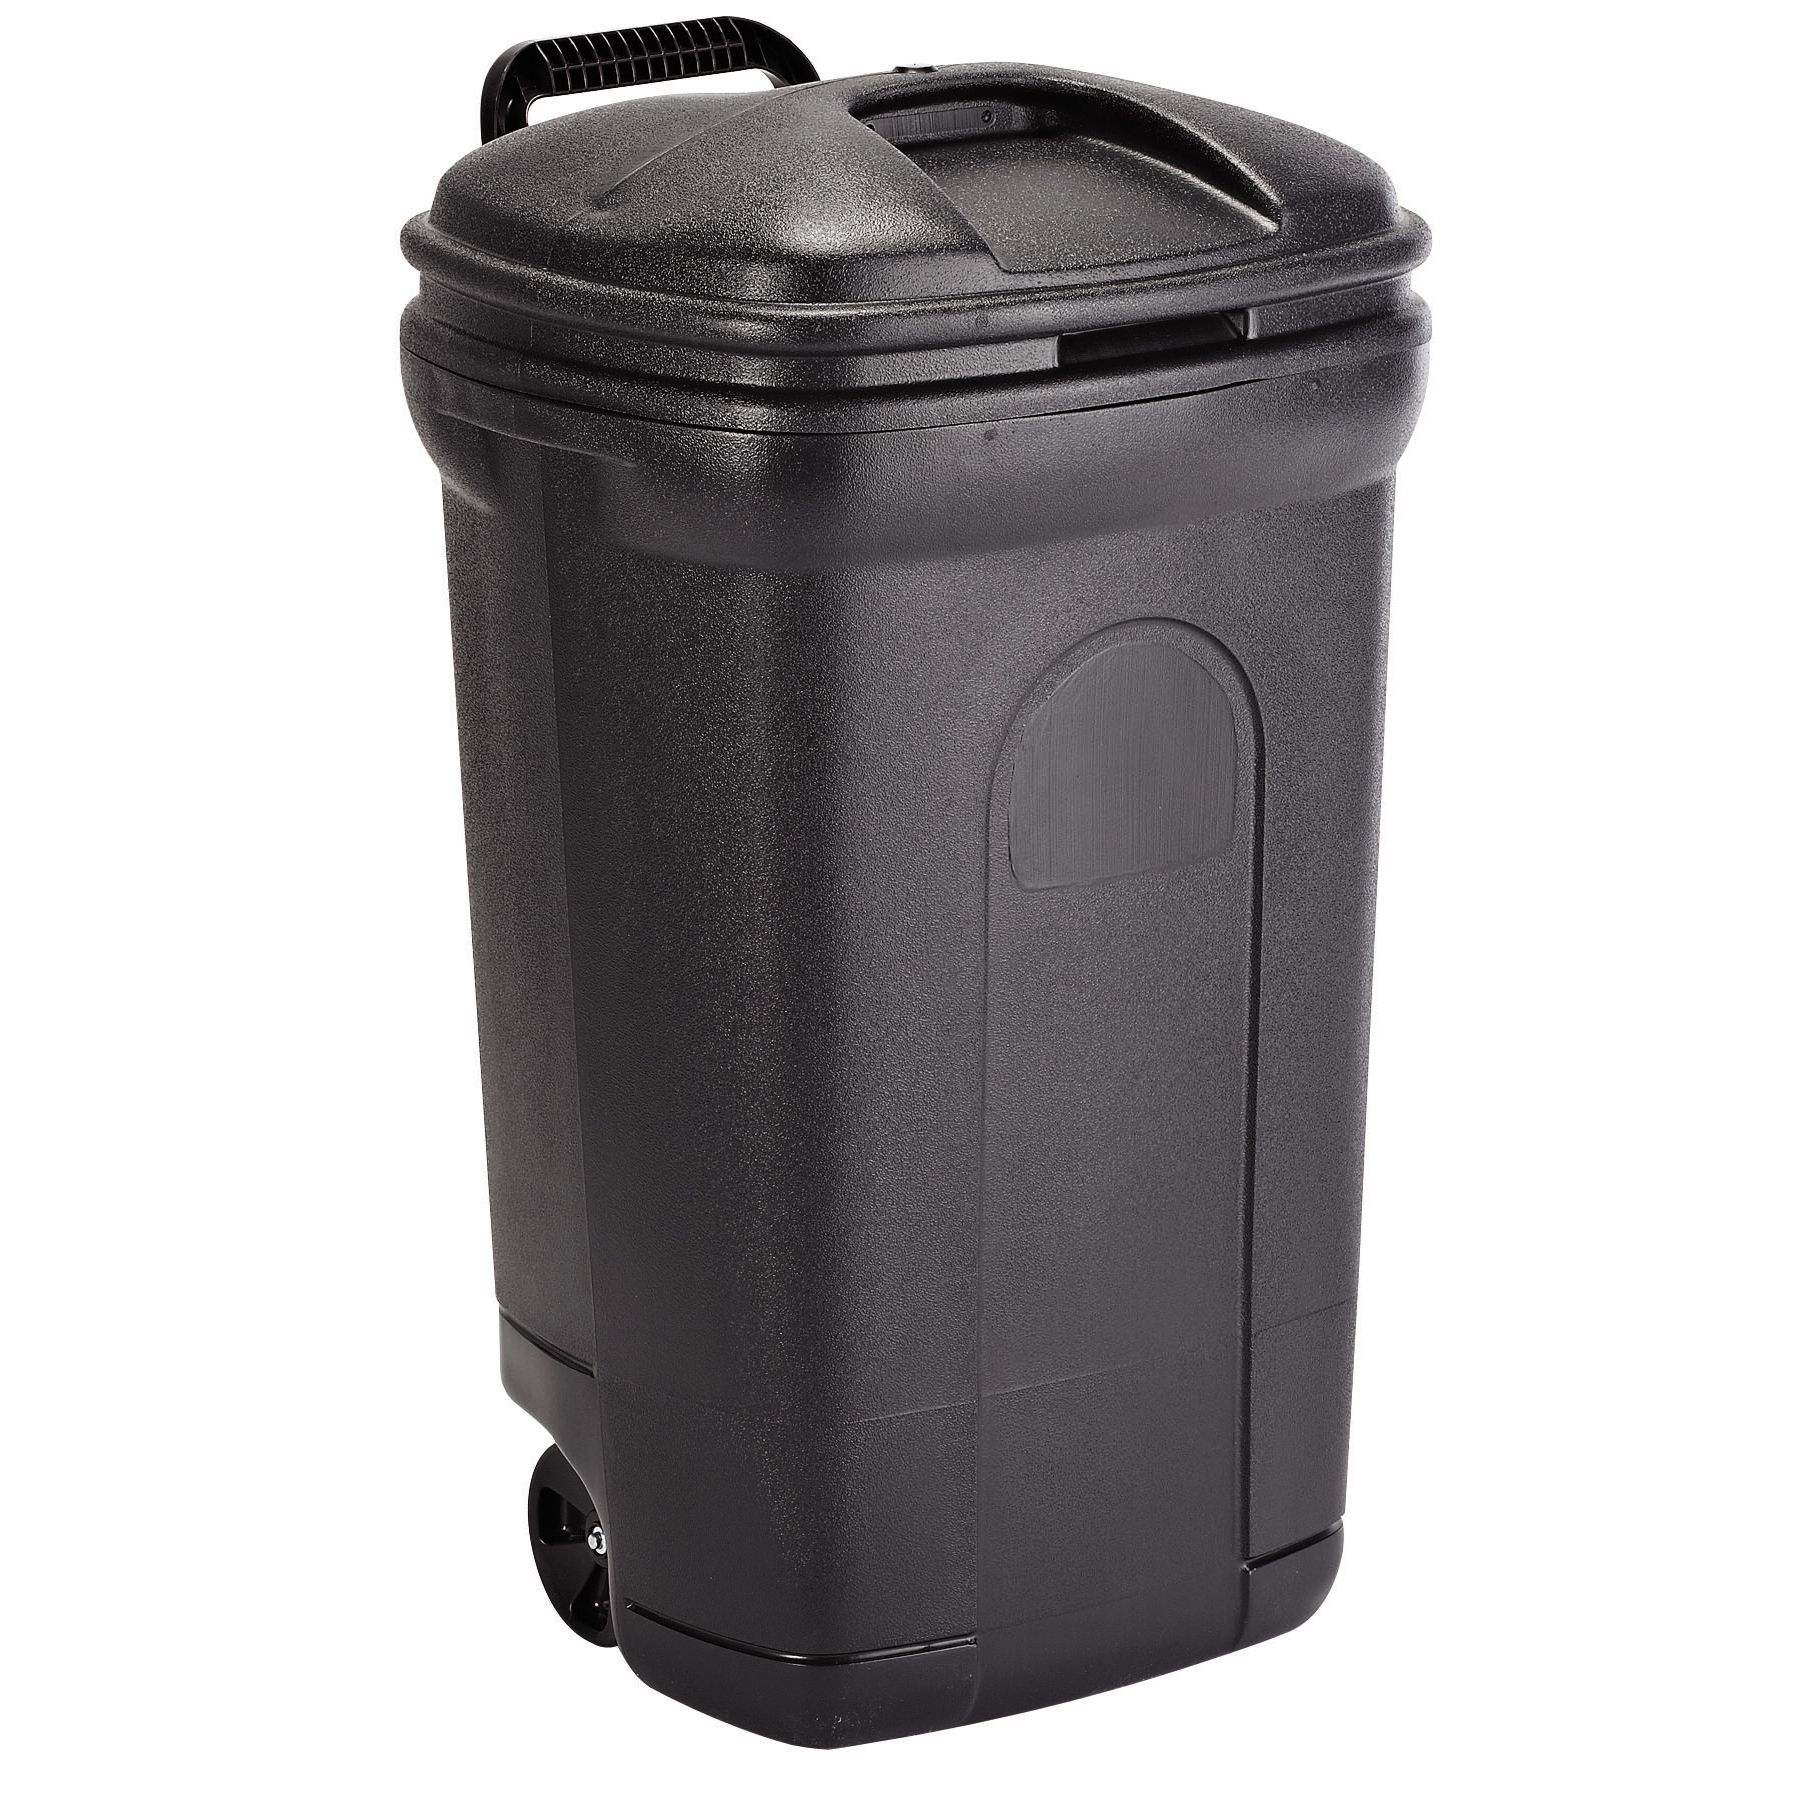 United Solutions TB0014 35 Gallon Trash Can with Wheels